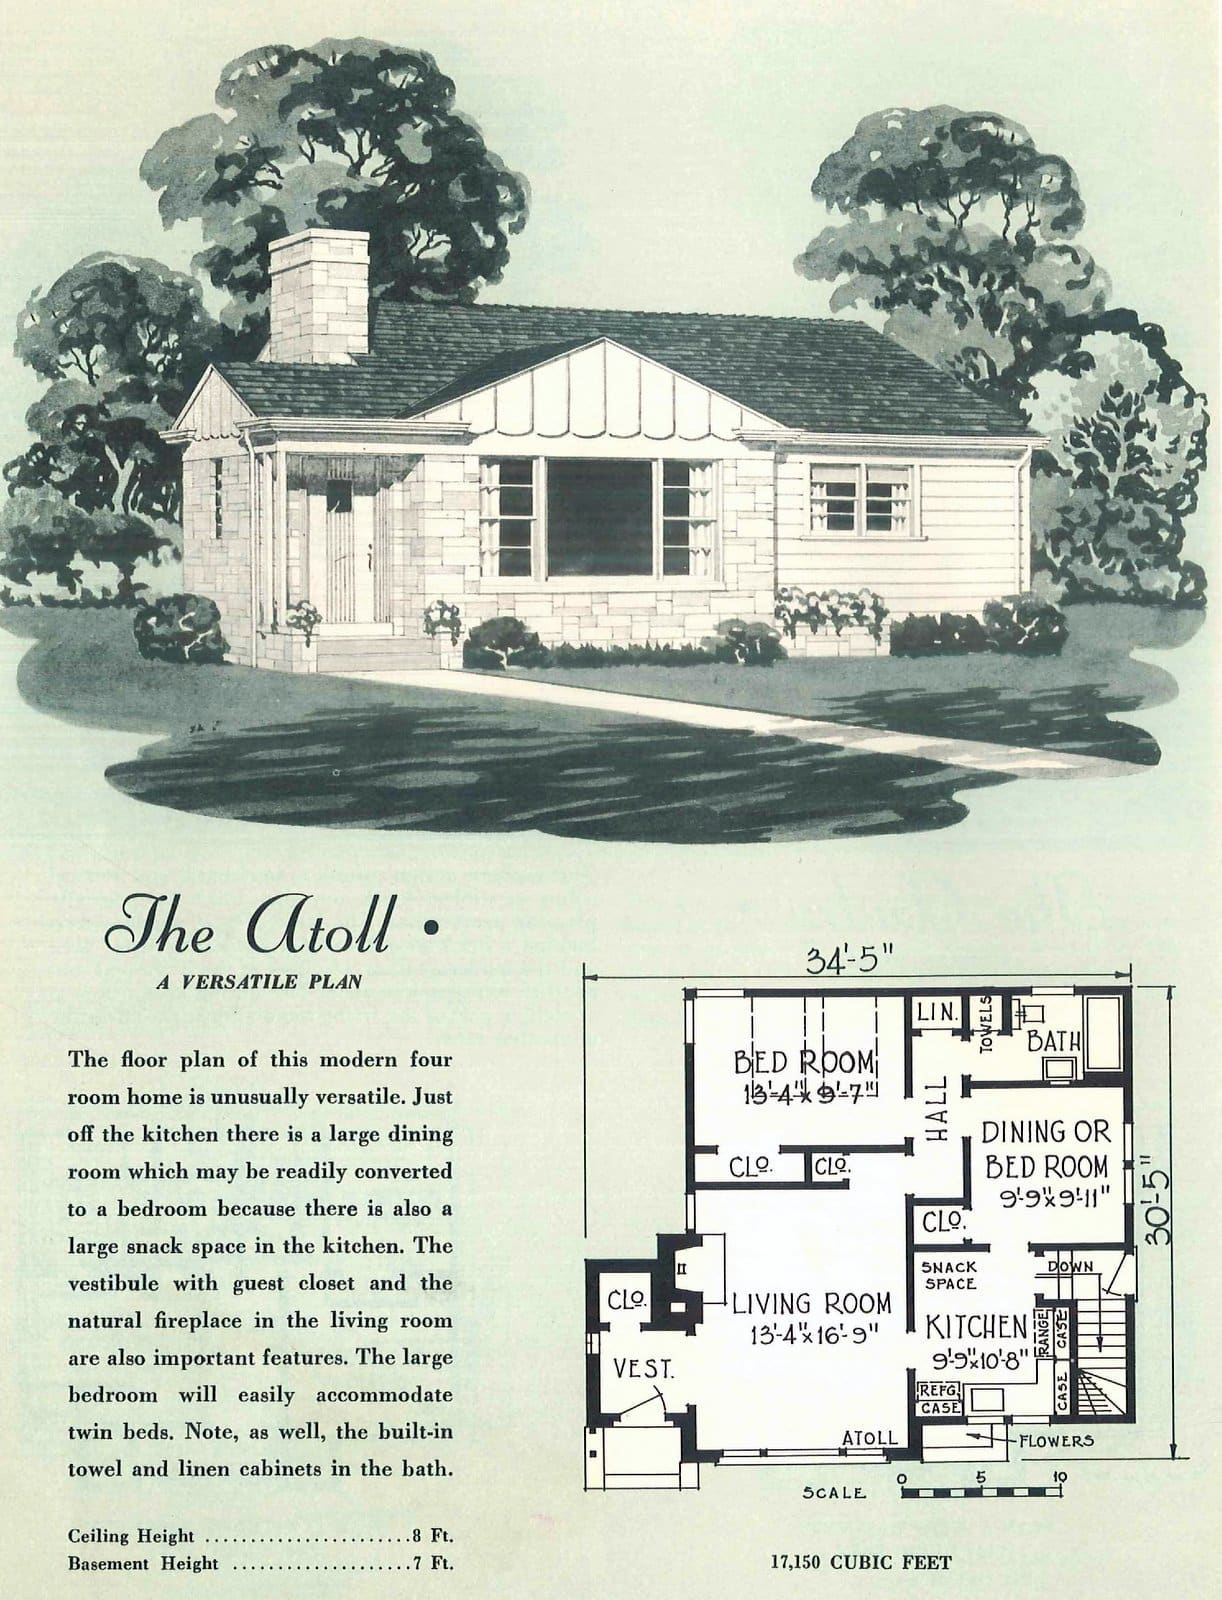 Vintage fifties small starter home plans from 1950 (2)